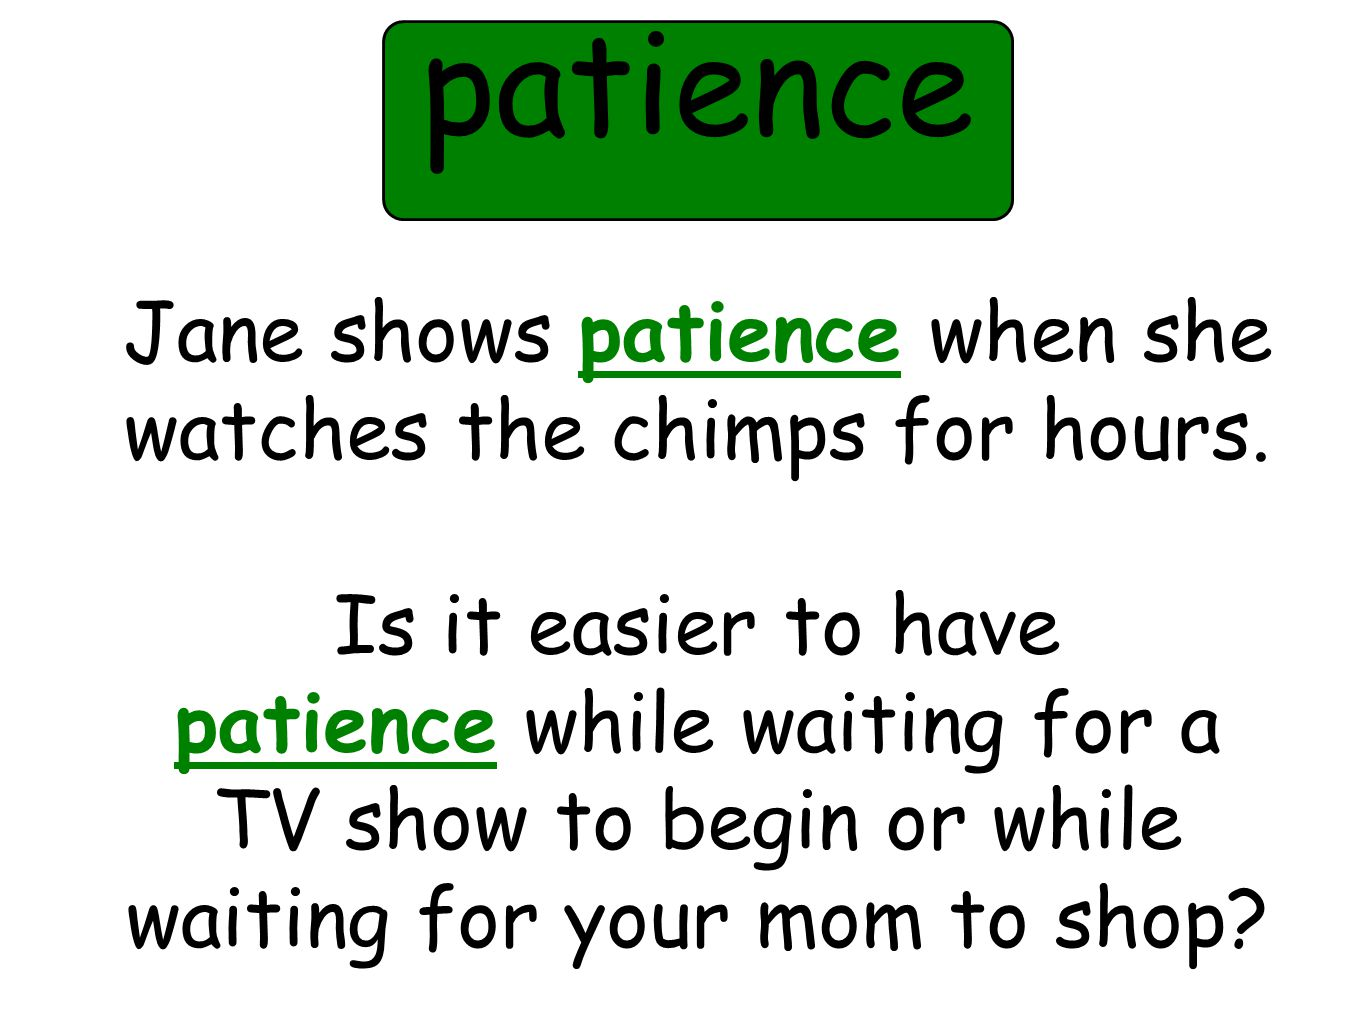 Jane shows patience when she watches the chimps for hours.